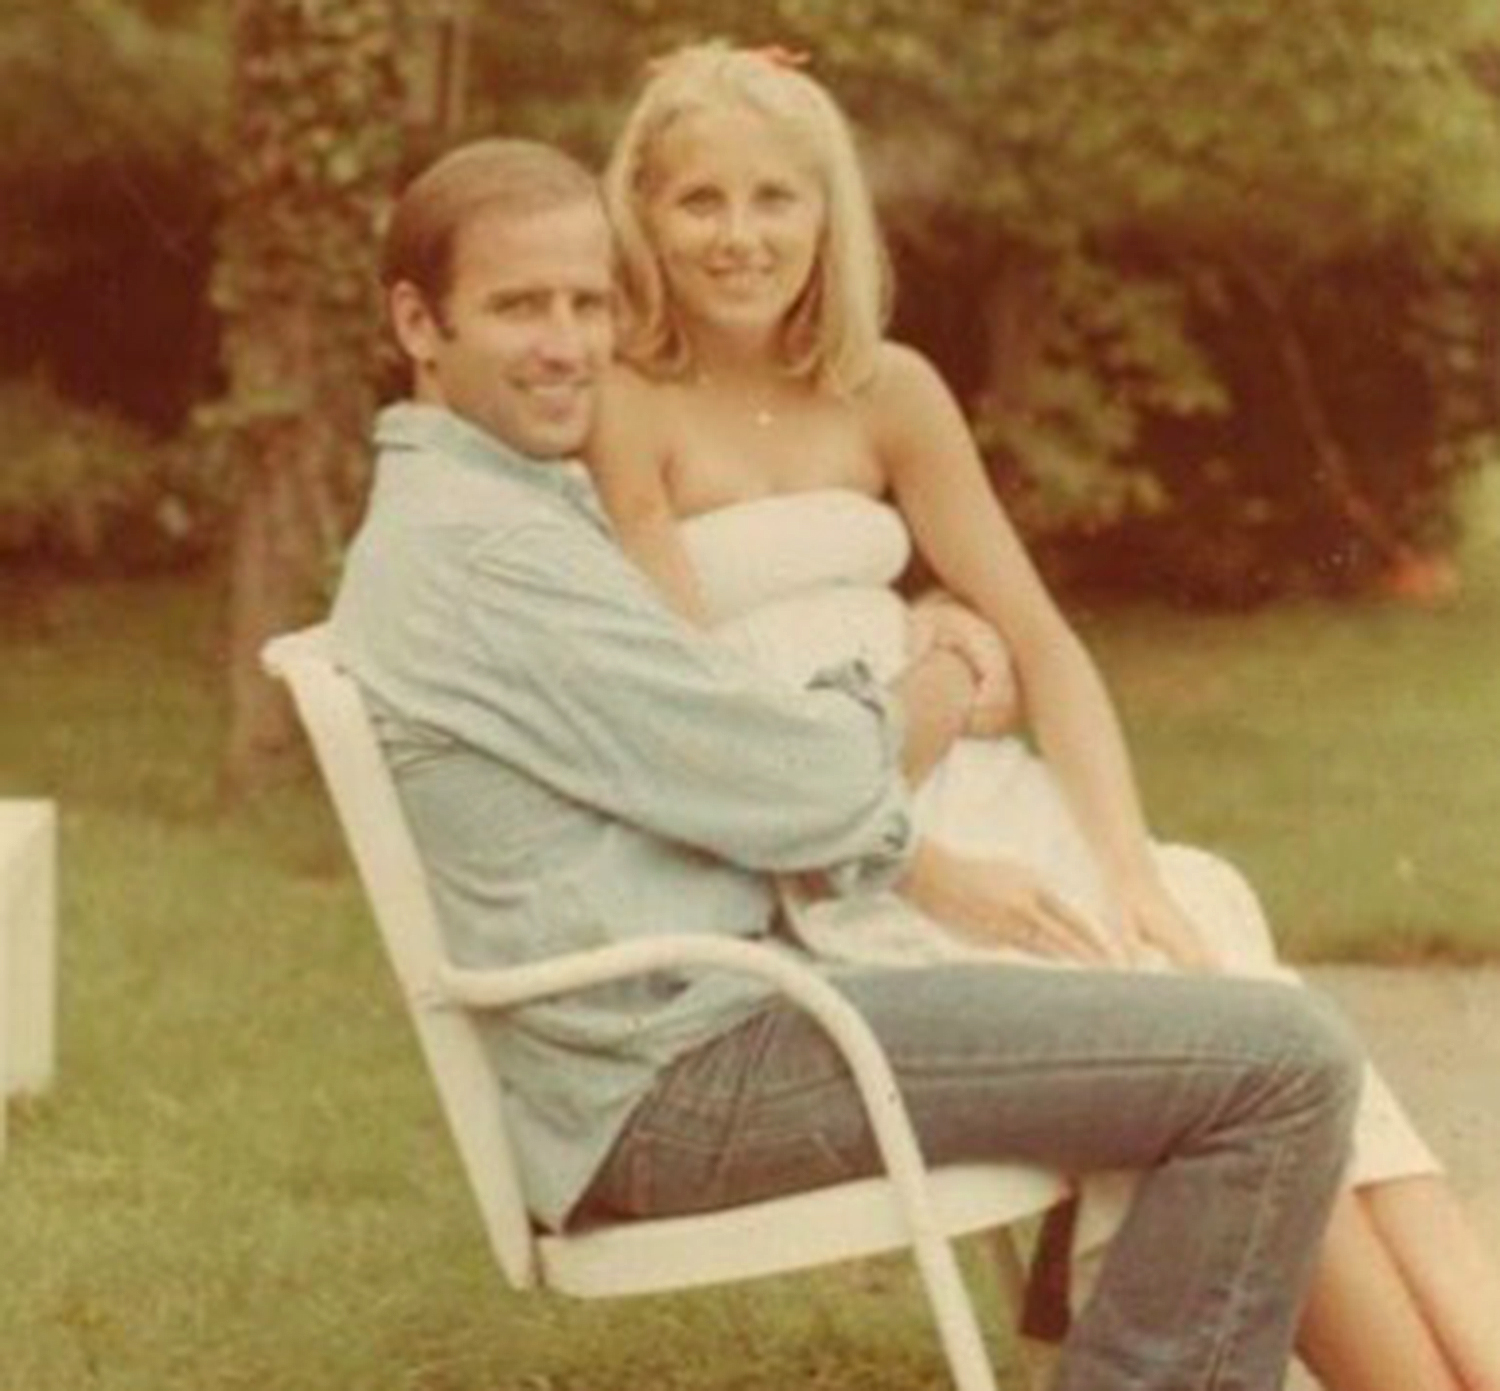 Joe And Jill Biden S Love Story All About The President And First Lady S Relationship People Com